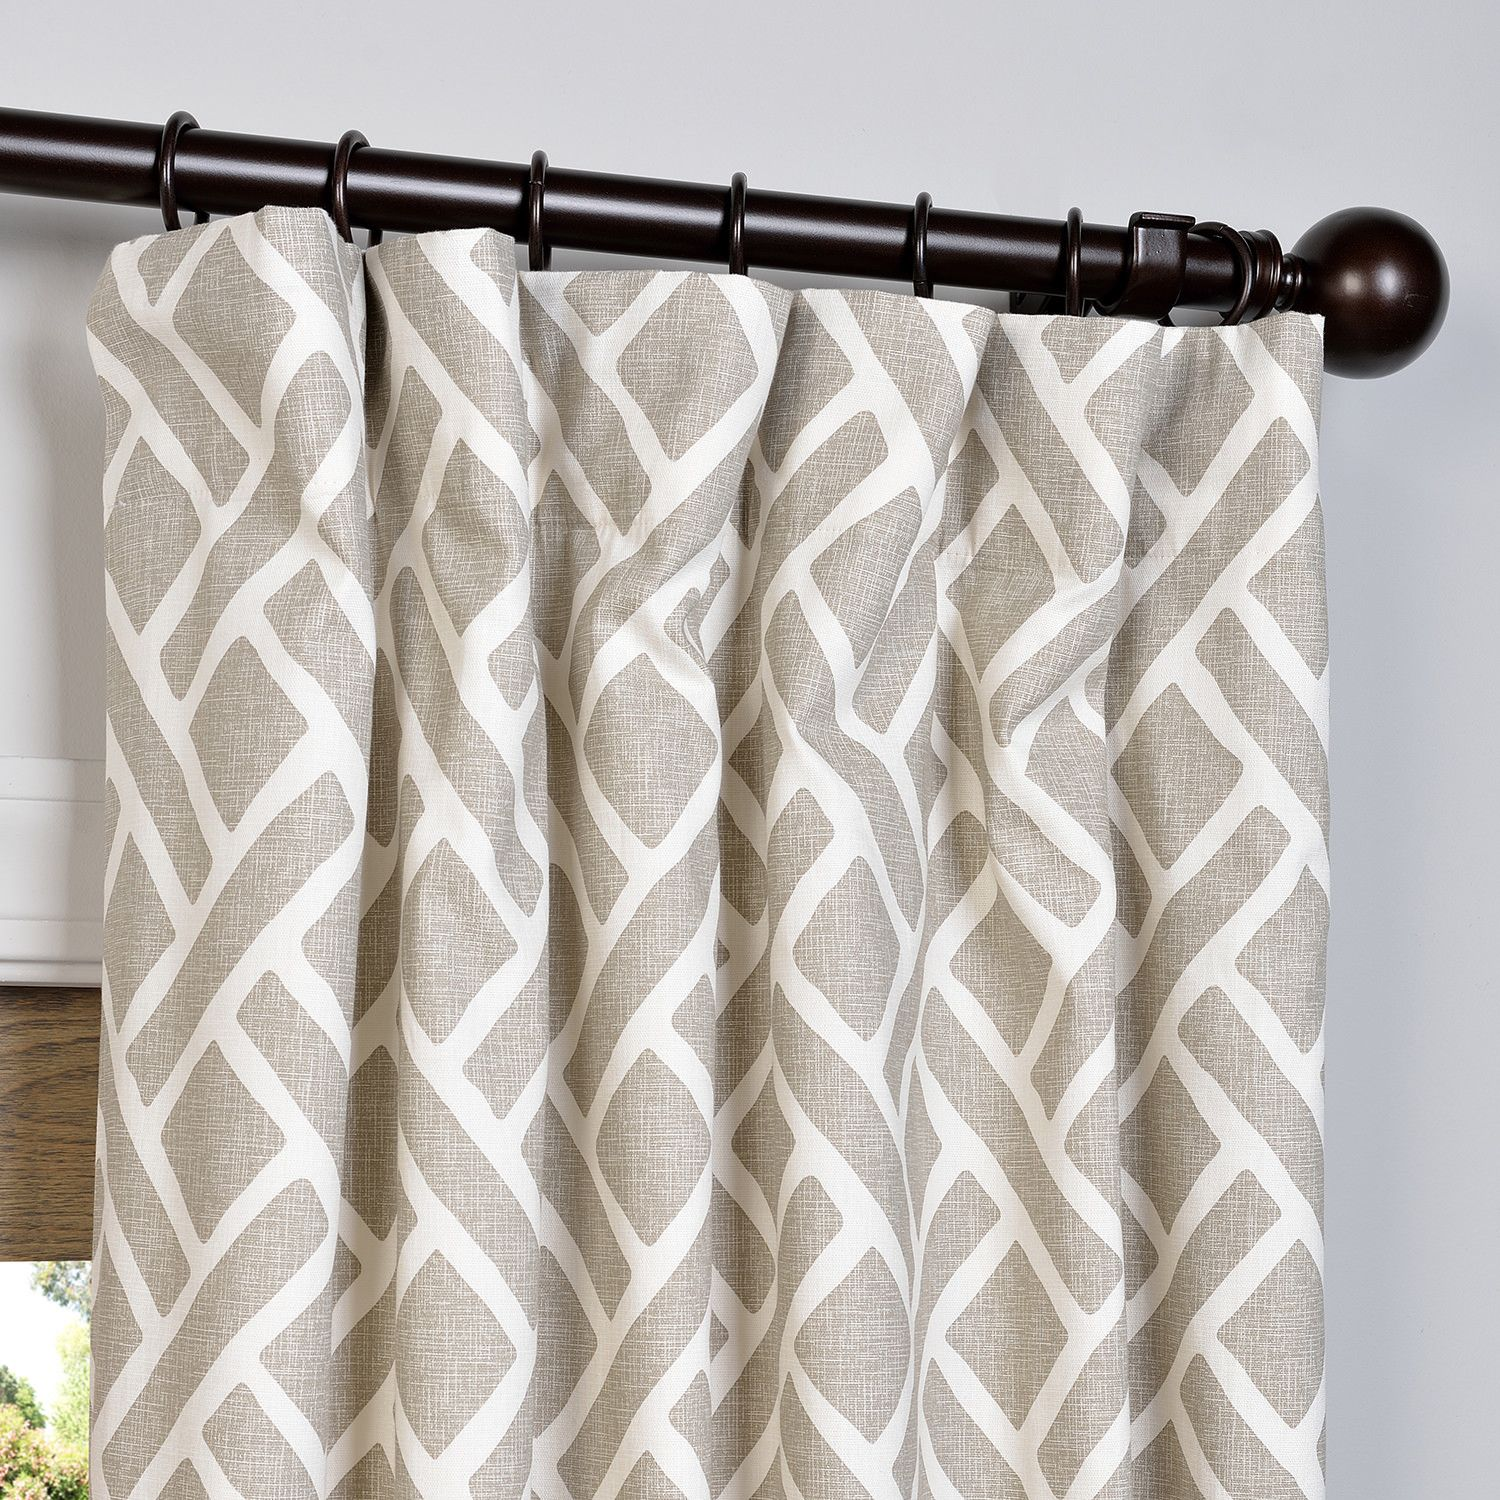 Laurel Foundry Modern Farmhouse Amandier Single Curtain Panel Printed Cotton Curtain Pattern Curtains Living Room Living Room Drapes